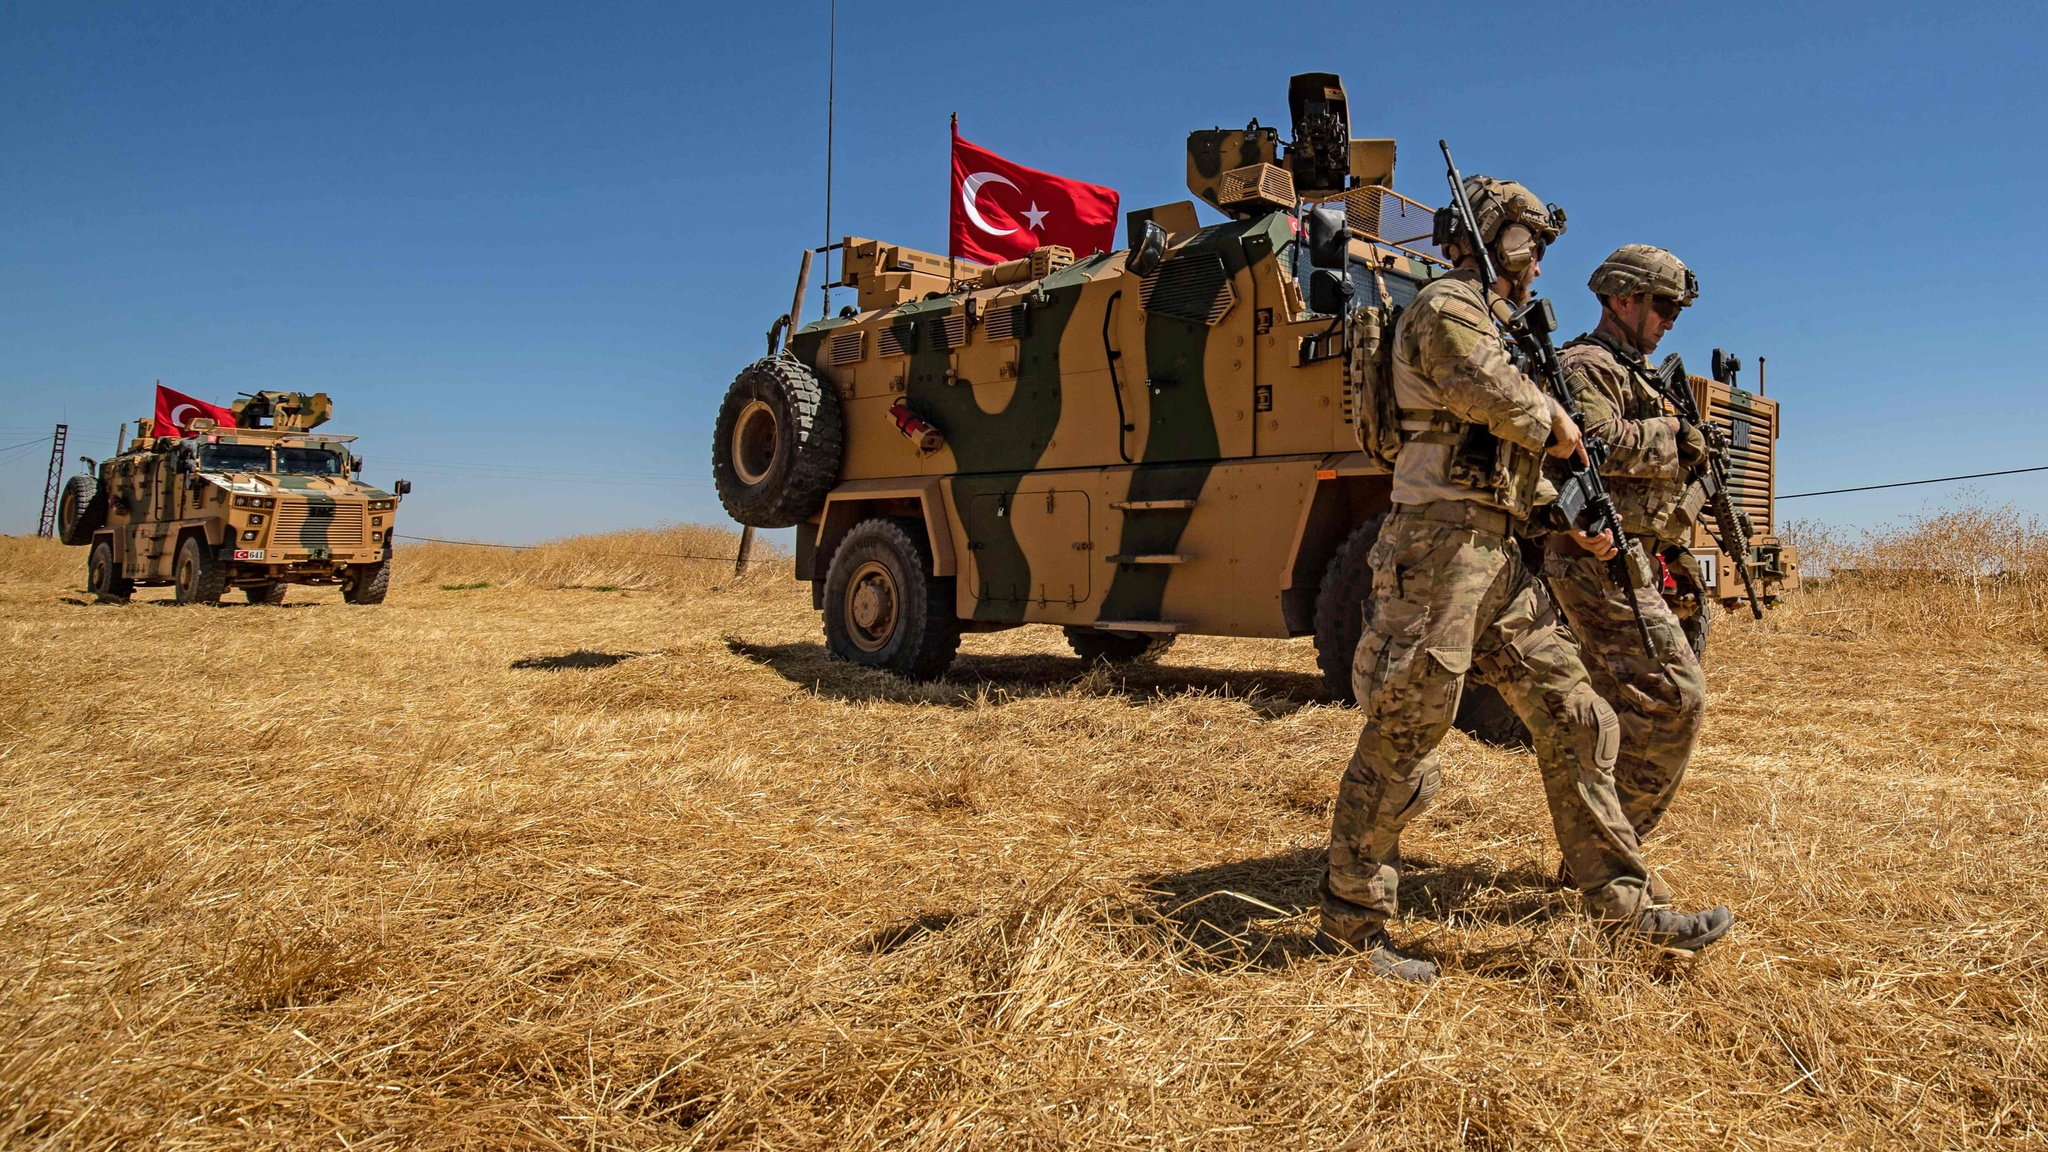 Donald Trump clears Turkish operation in Syria against Kurds.